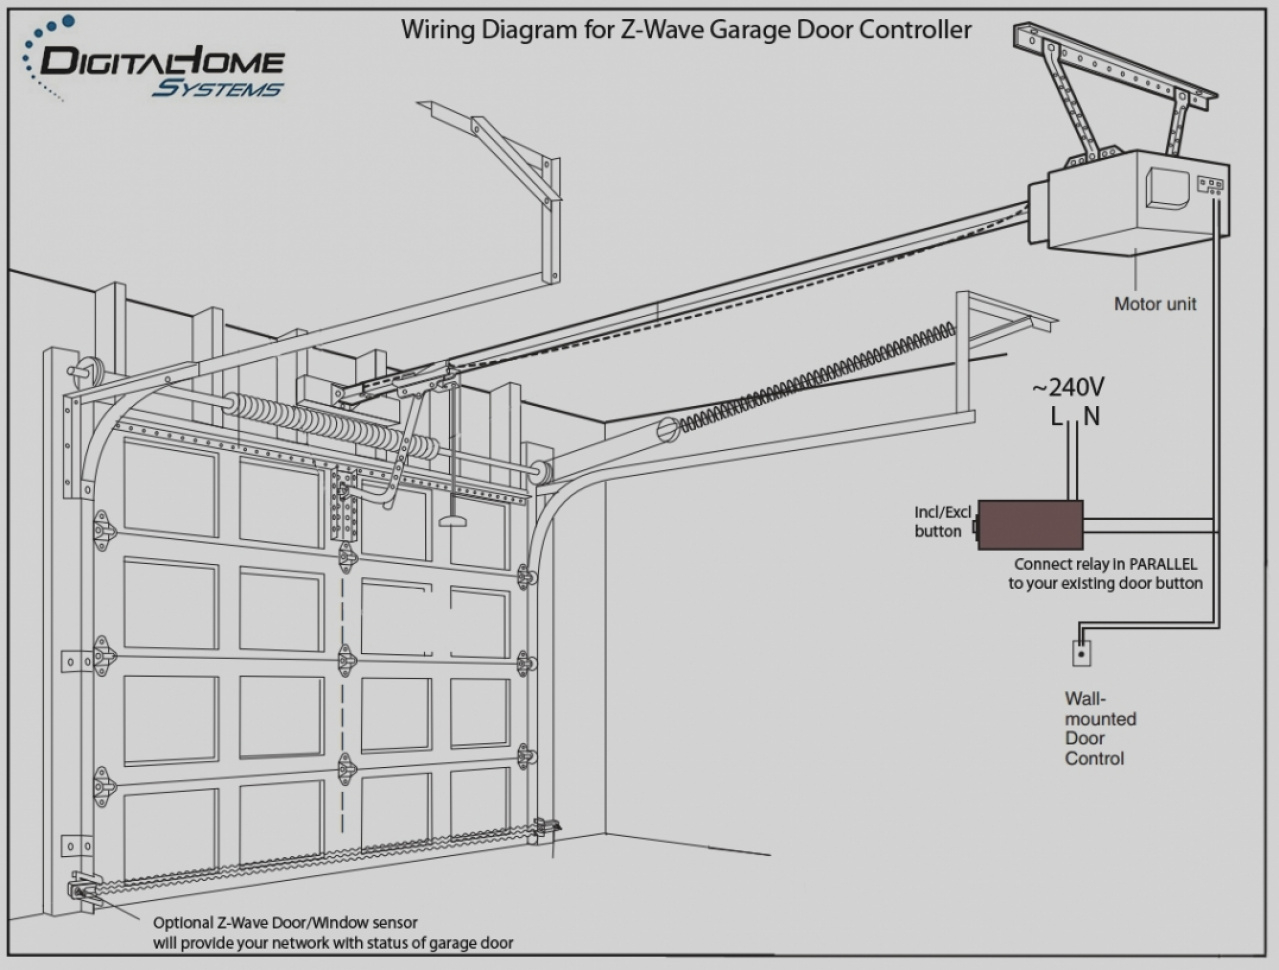 genie garage door opener sensor wiring diagram Download-Beautiful Wiring Diagram For Genie Garage Door Opener Sensor Doors 17-r